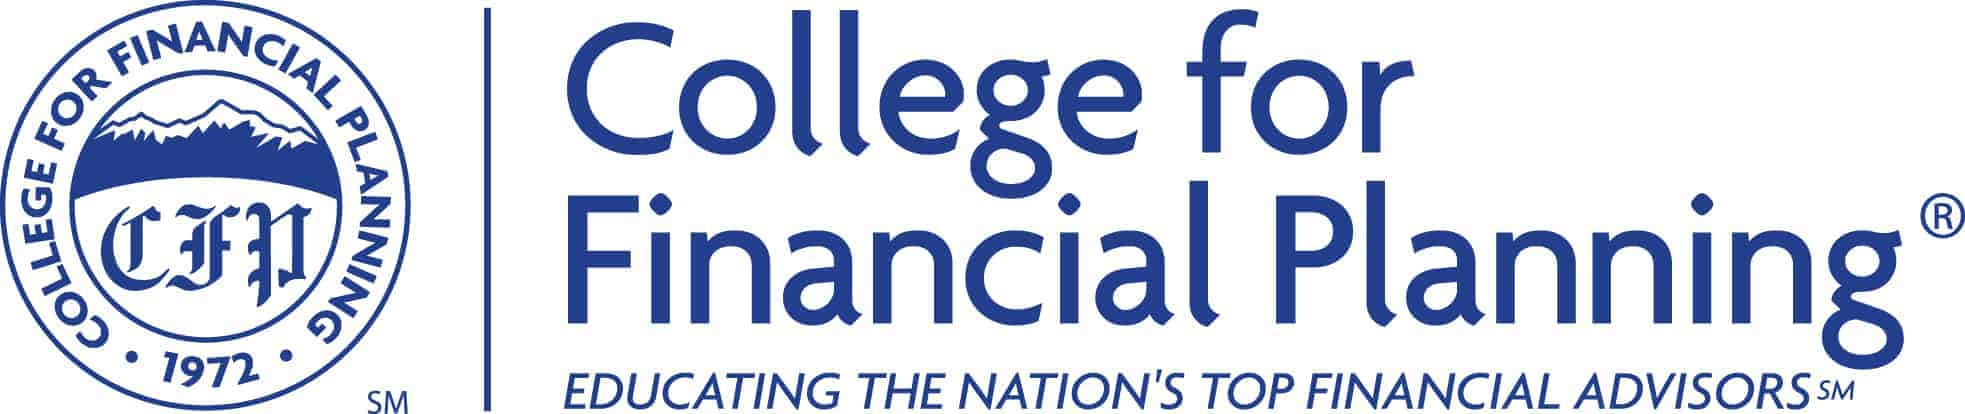 fox valley technical college logo 6382